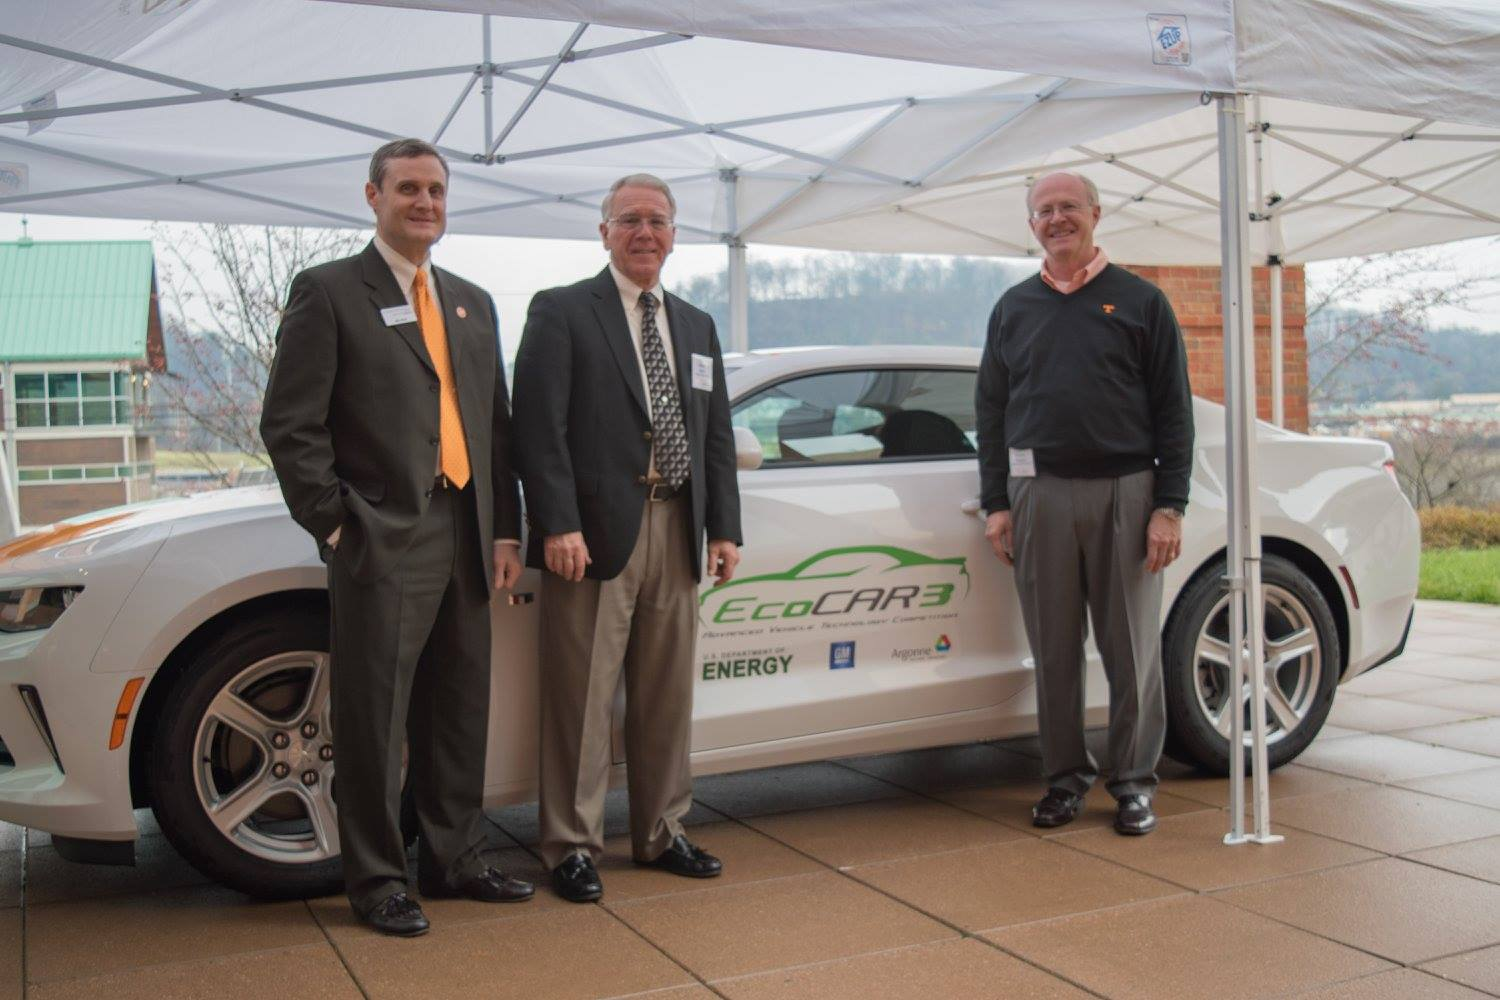 Deans with EcoCar3